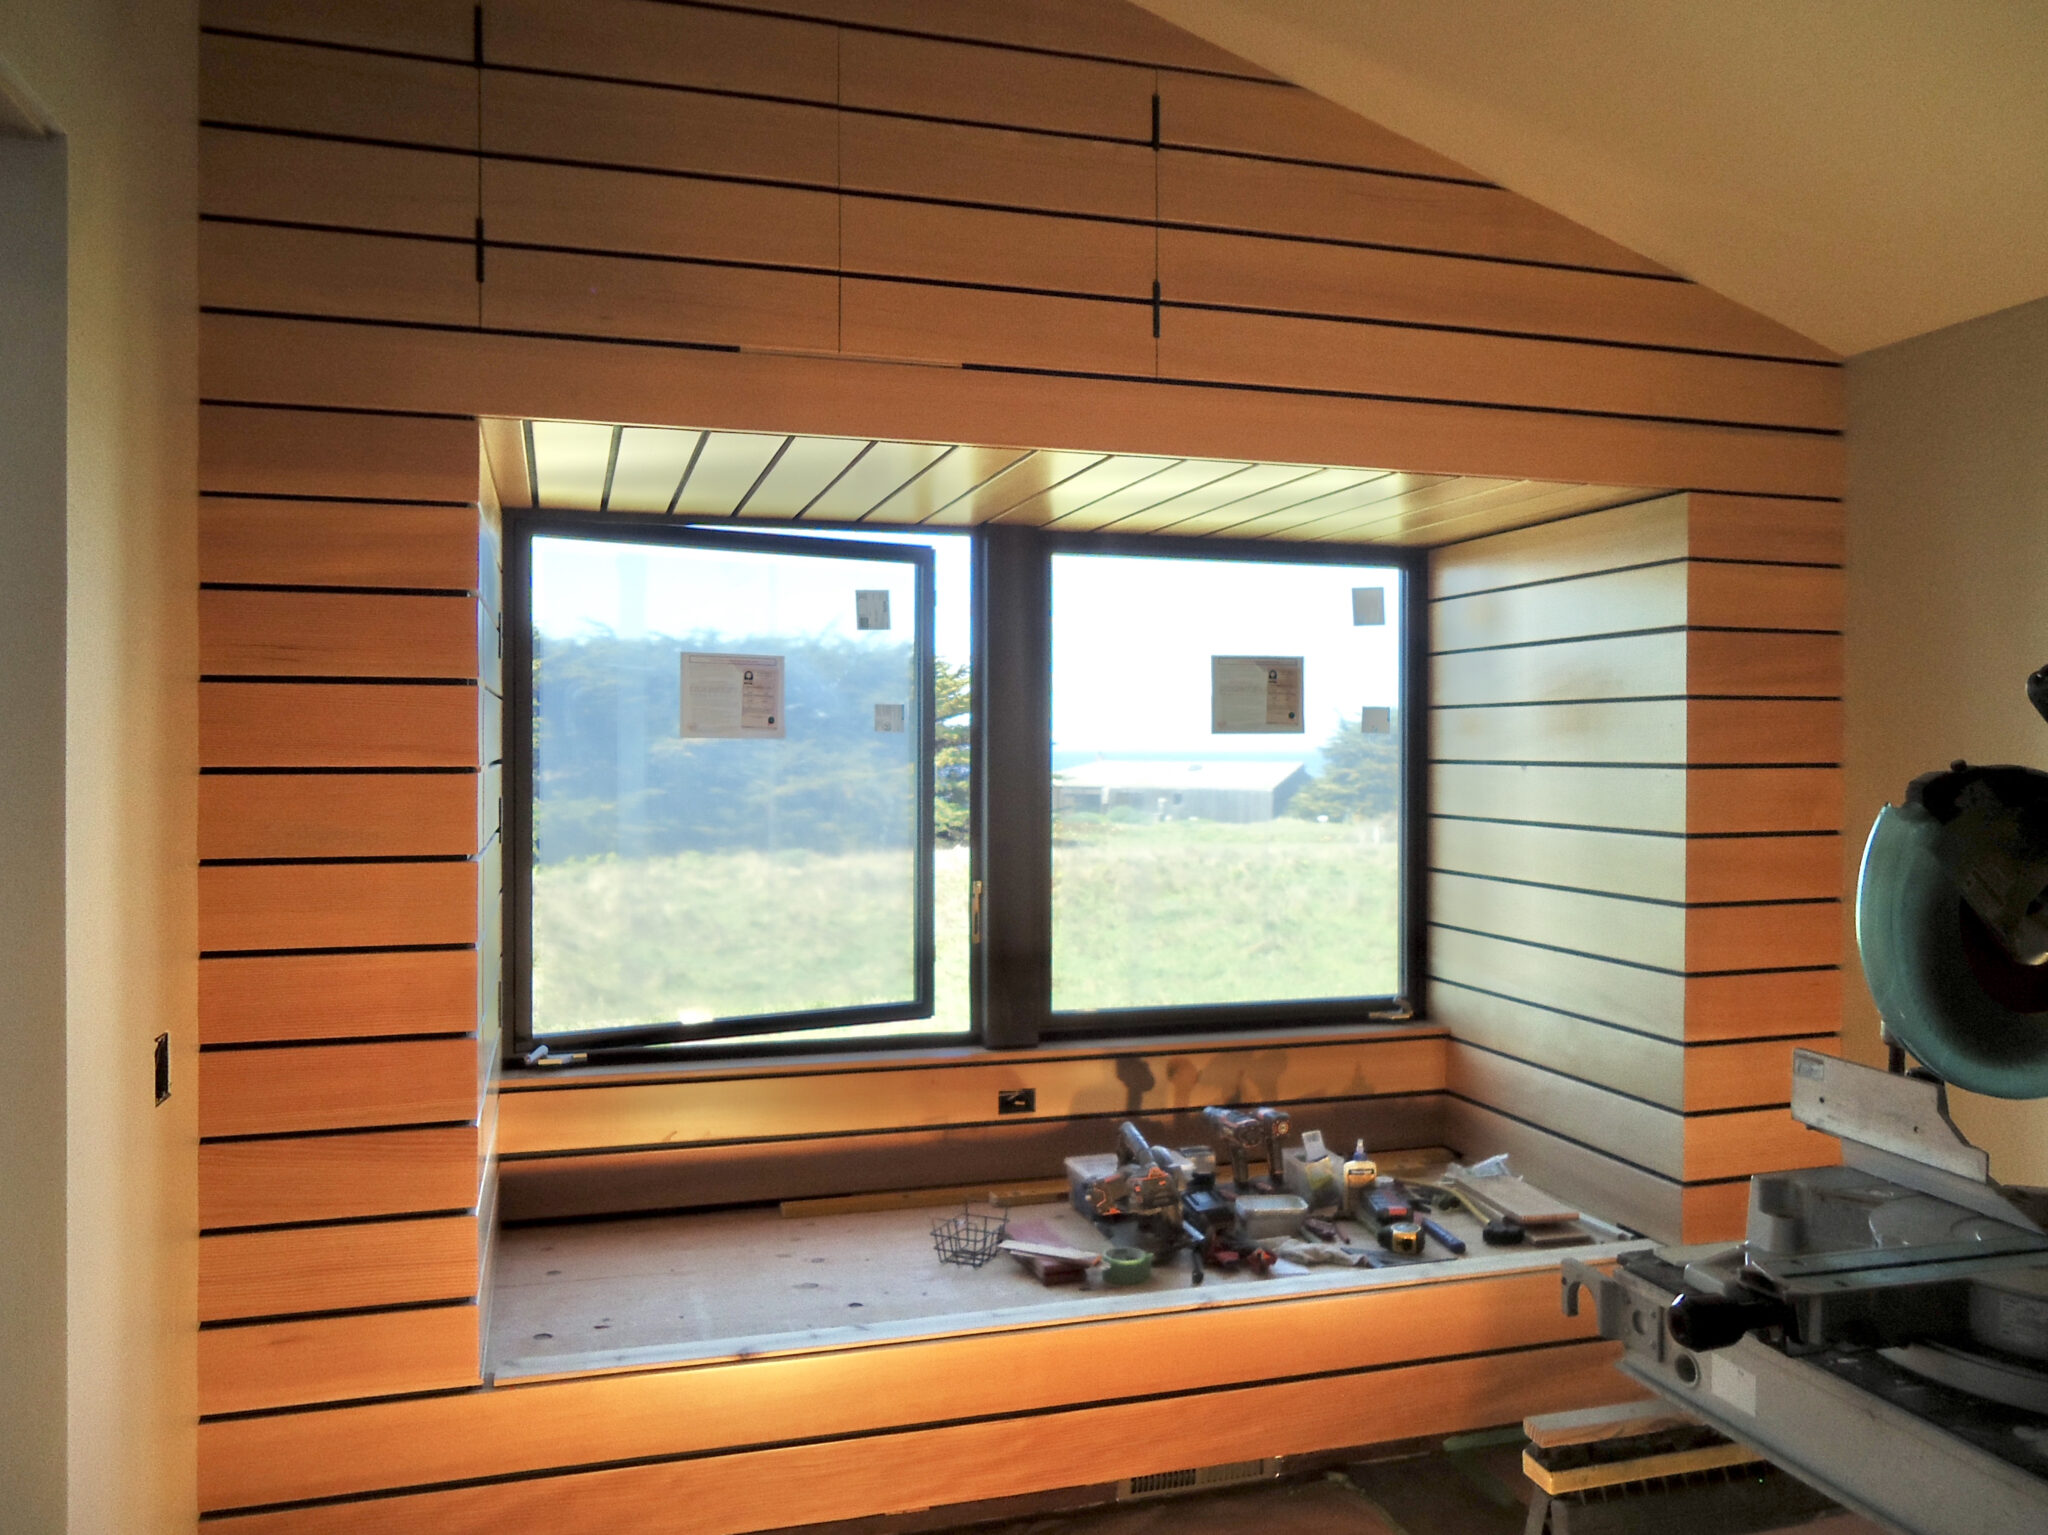 Feature wall with bench seat opened window